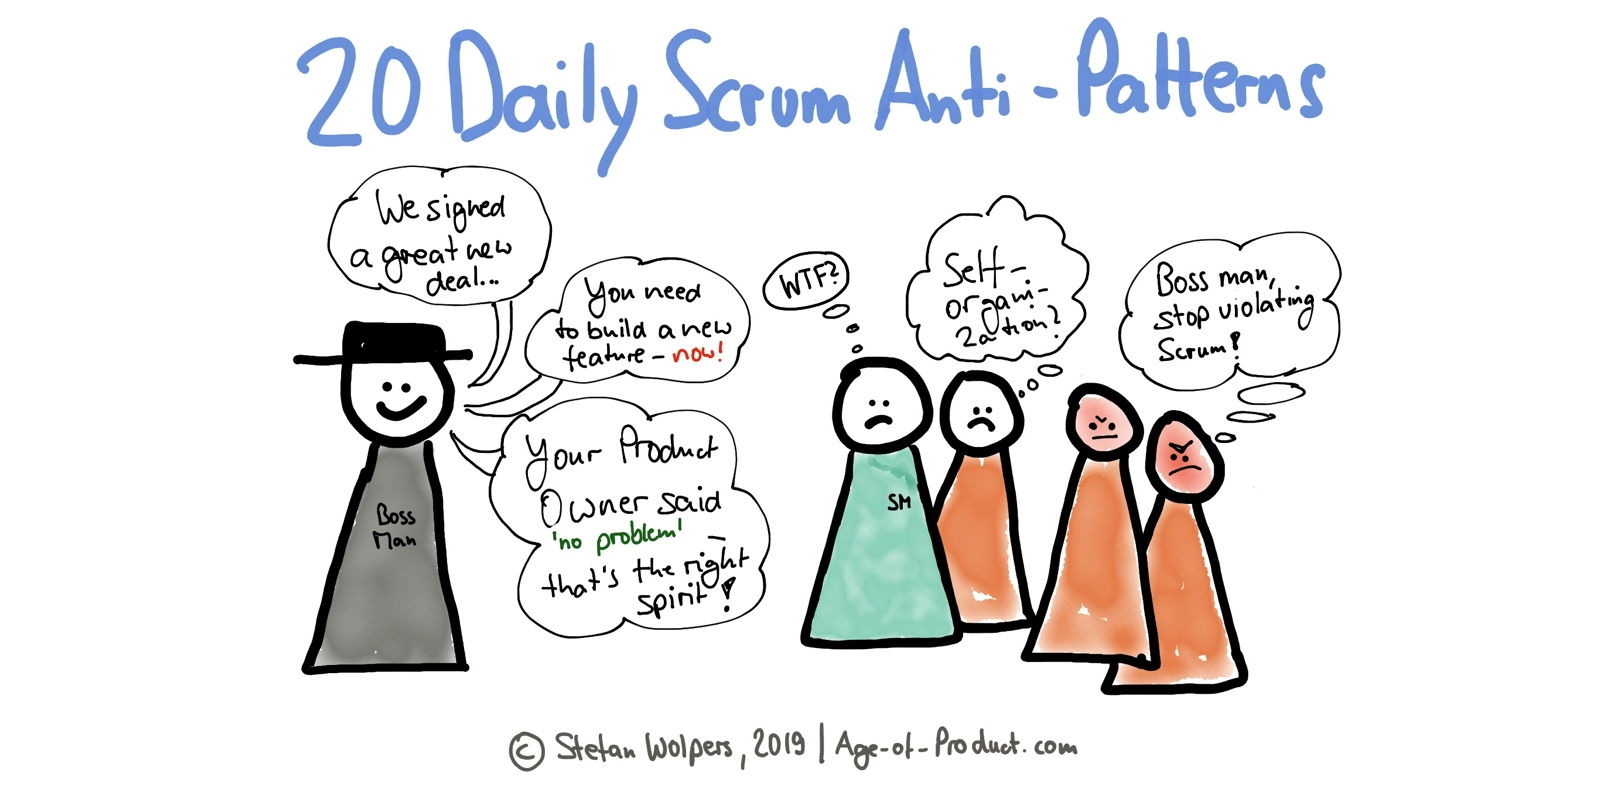 Daily Scrum Anti-Patterns: 20 Ways to Improve | DeviceDaily.com